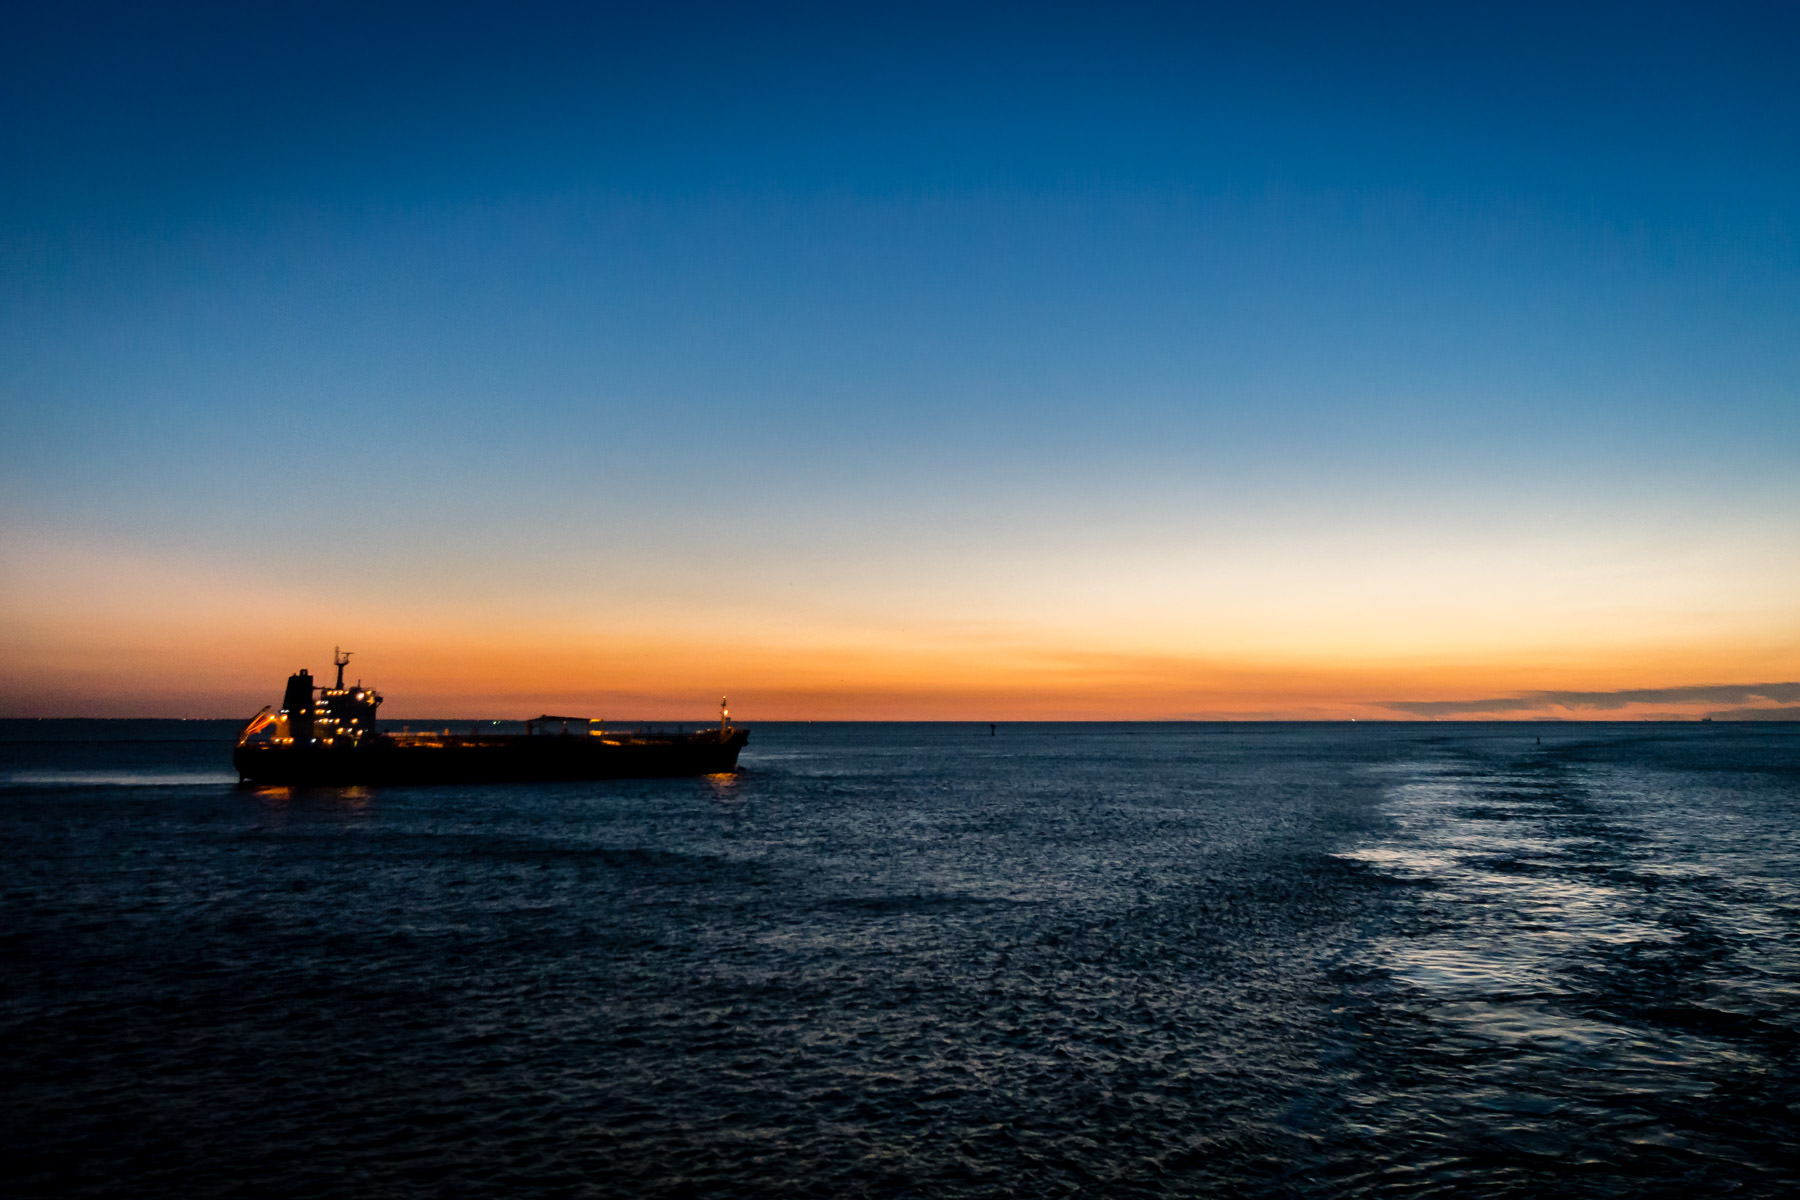 The chemical tanker Okhta Bridge transits Bolivar Roads just off the coast of Galveston, Texas, as the sun rises over the Gulf of Mexico.